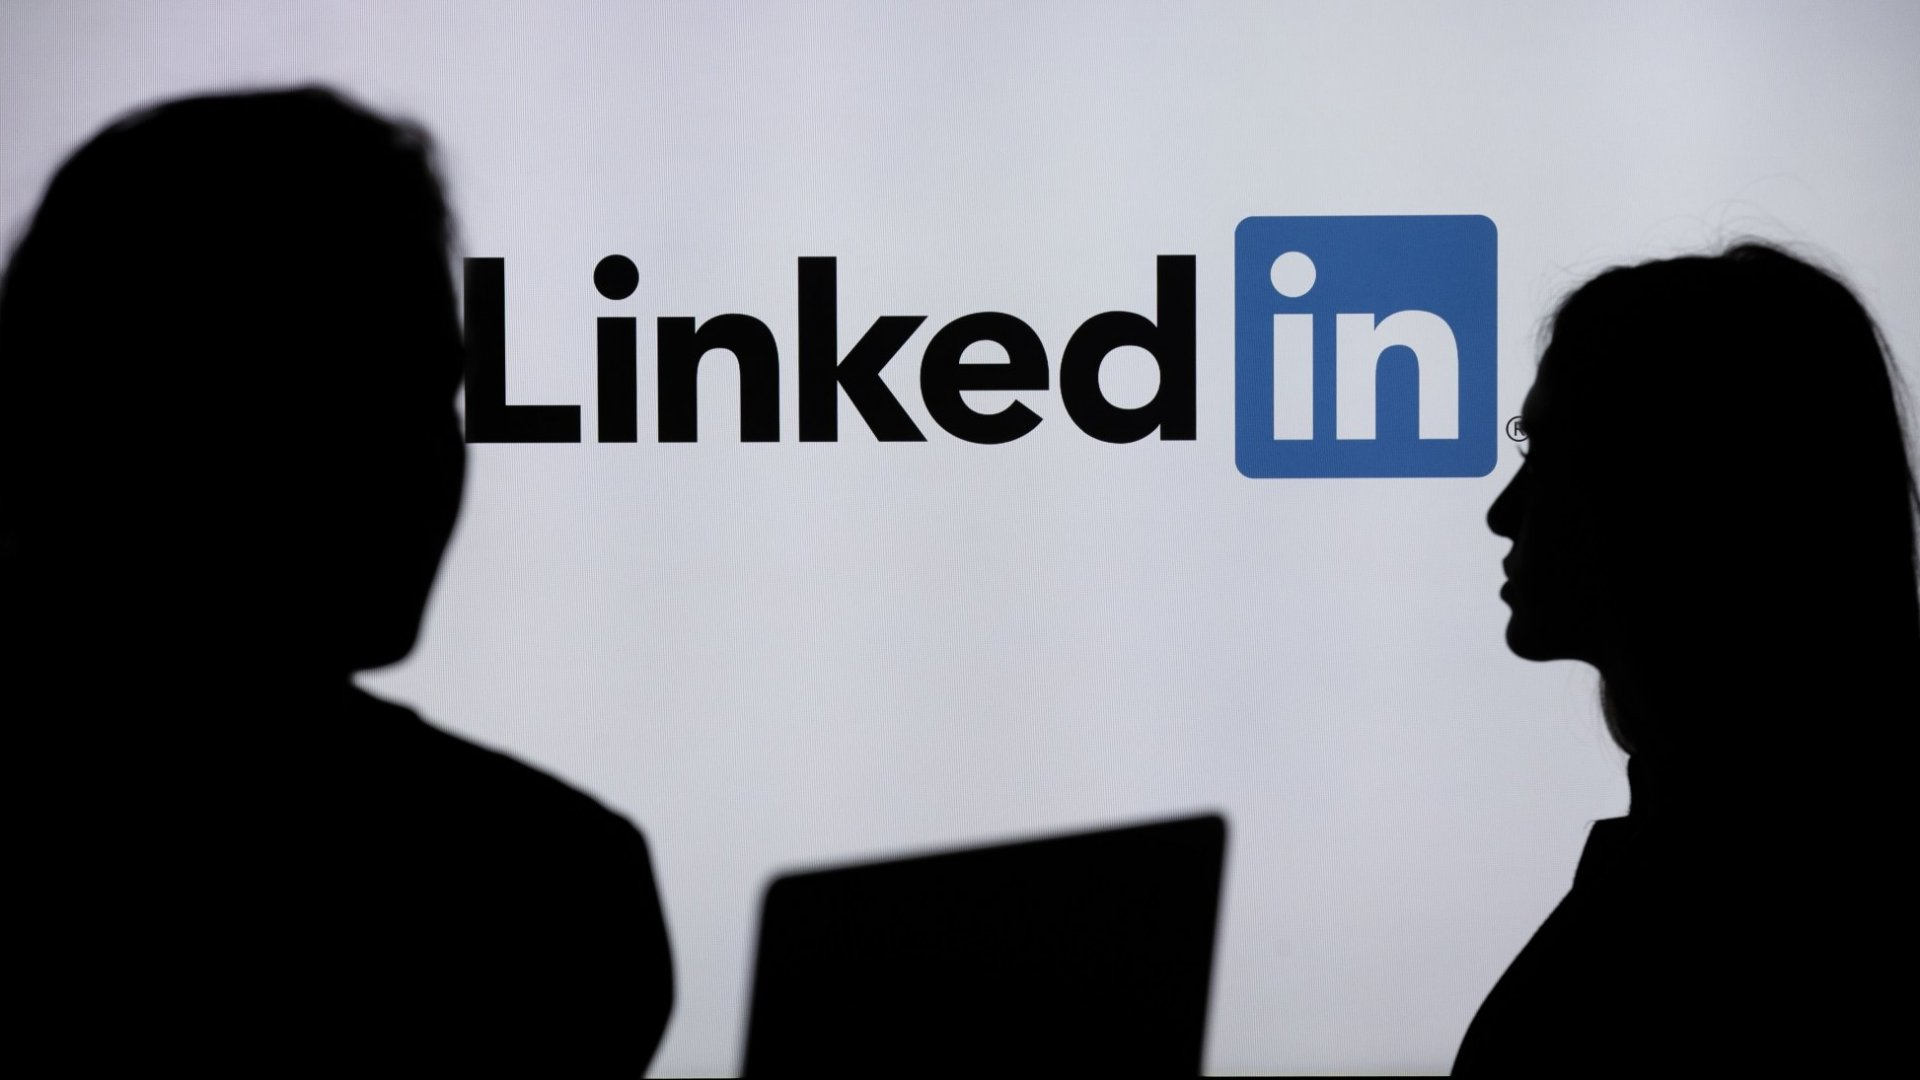 LinkedIn Just Suggested Members Try a Surprising New Strategy. (It Sounds Like the Opposite of What LinkedIn Has Always Told Its Members to Do)